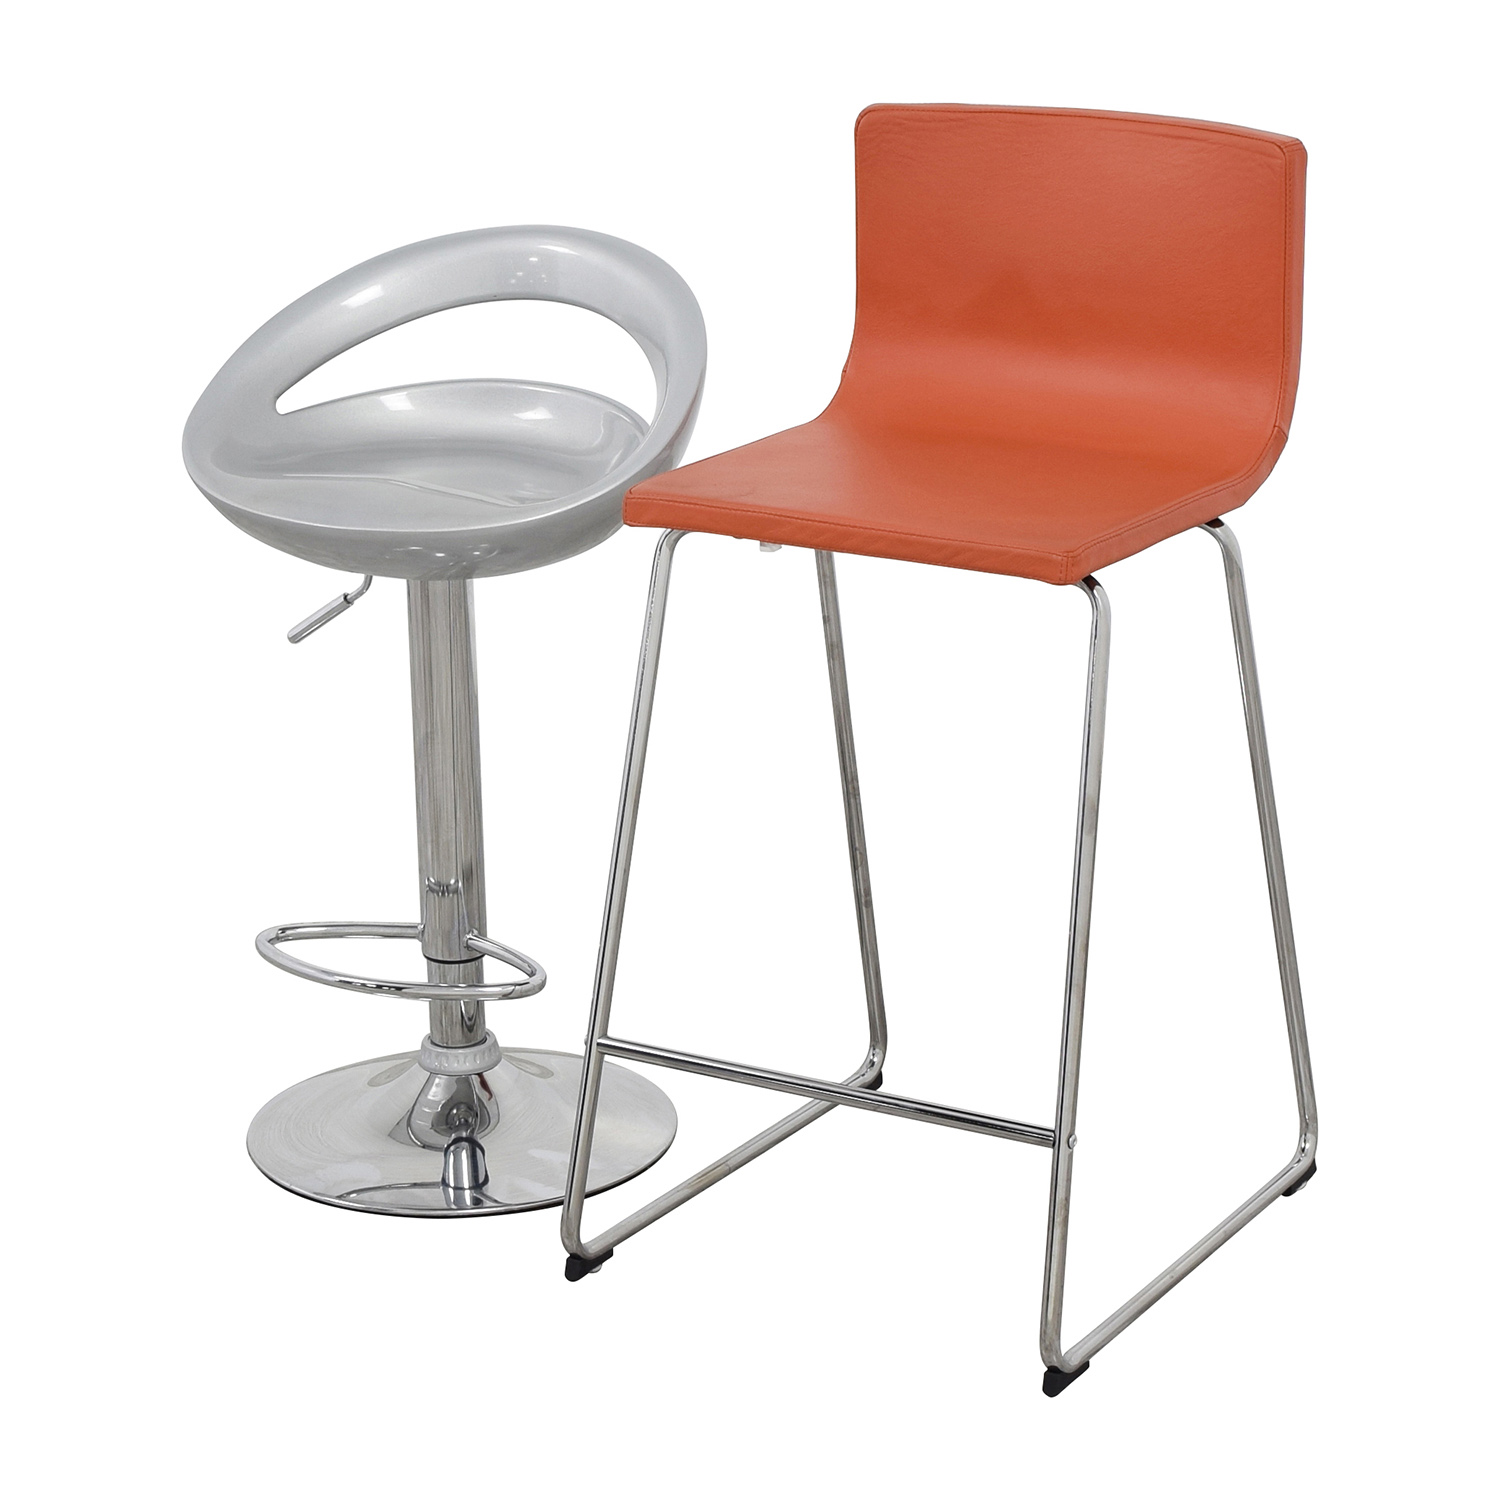 shop pair of modern orange and silver bar stools online